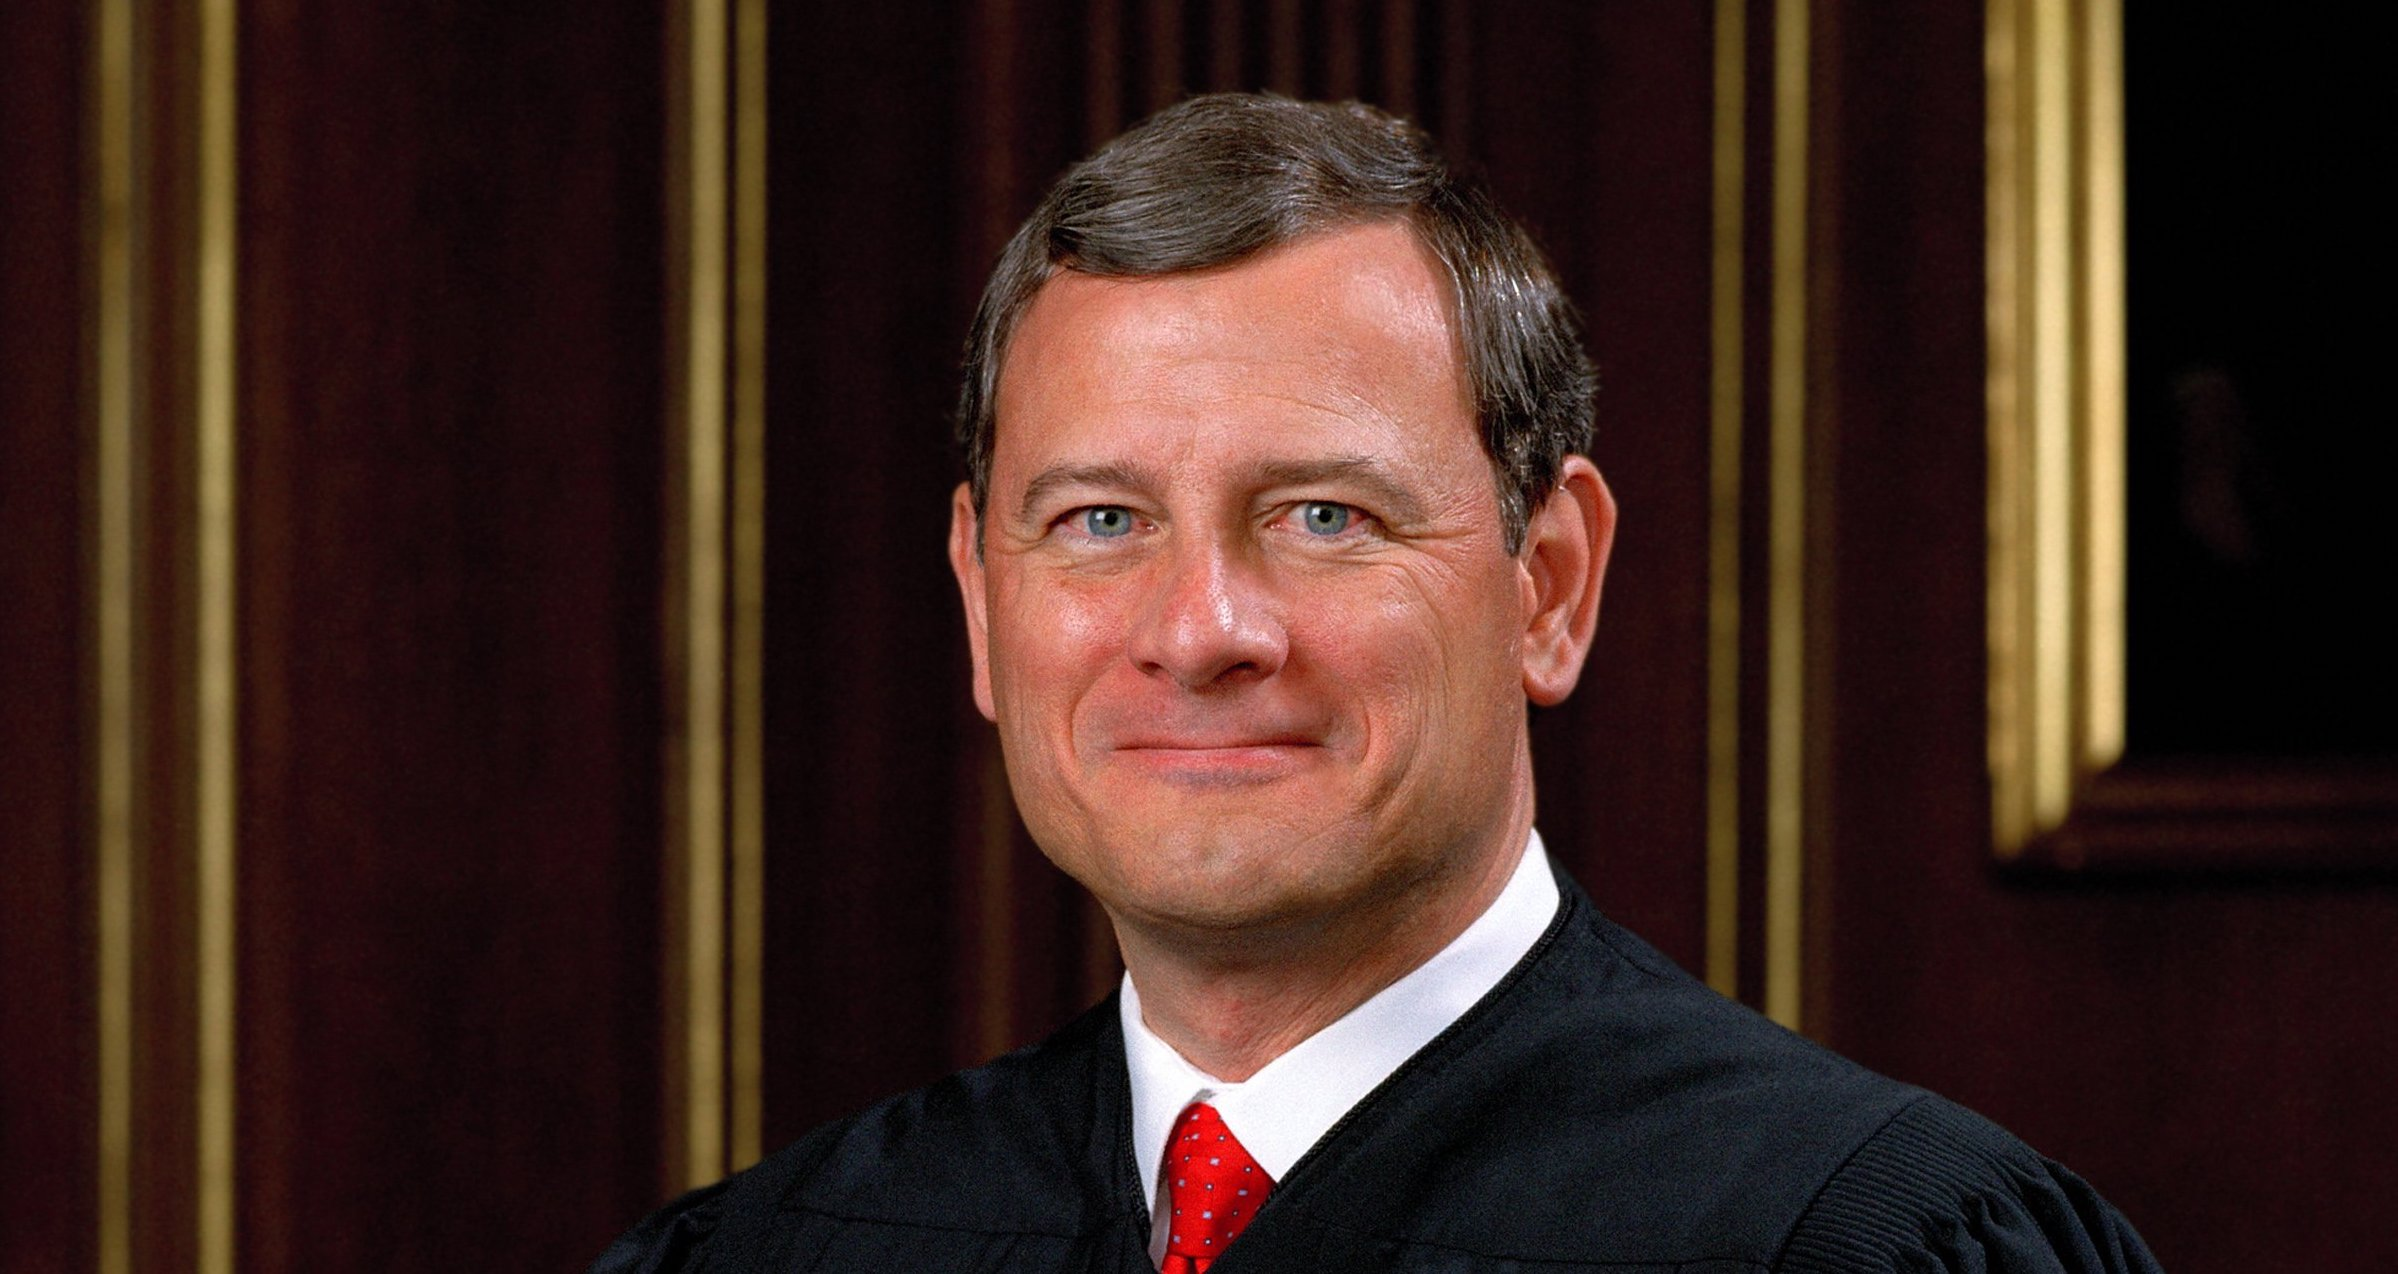 Chief Justice Roberts responds to Trump's criticism of judges